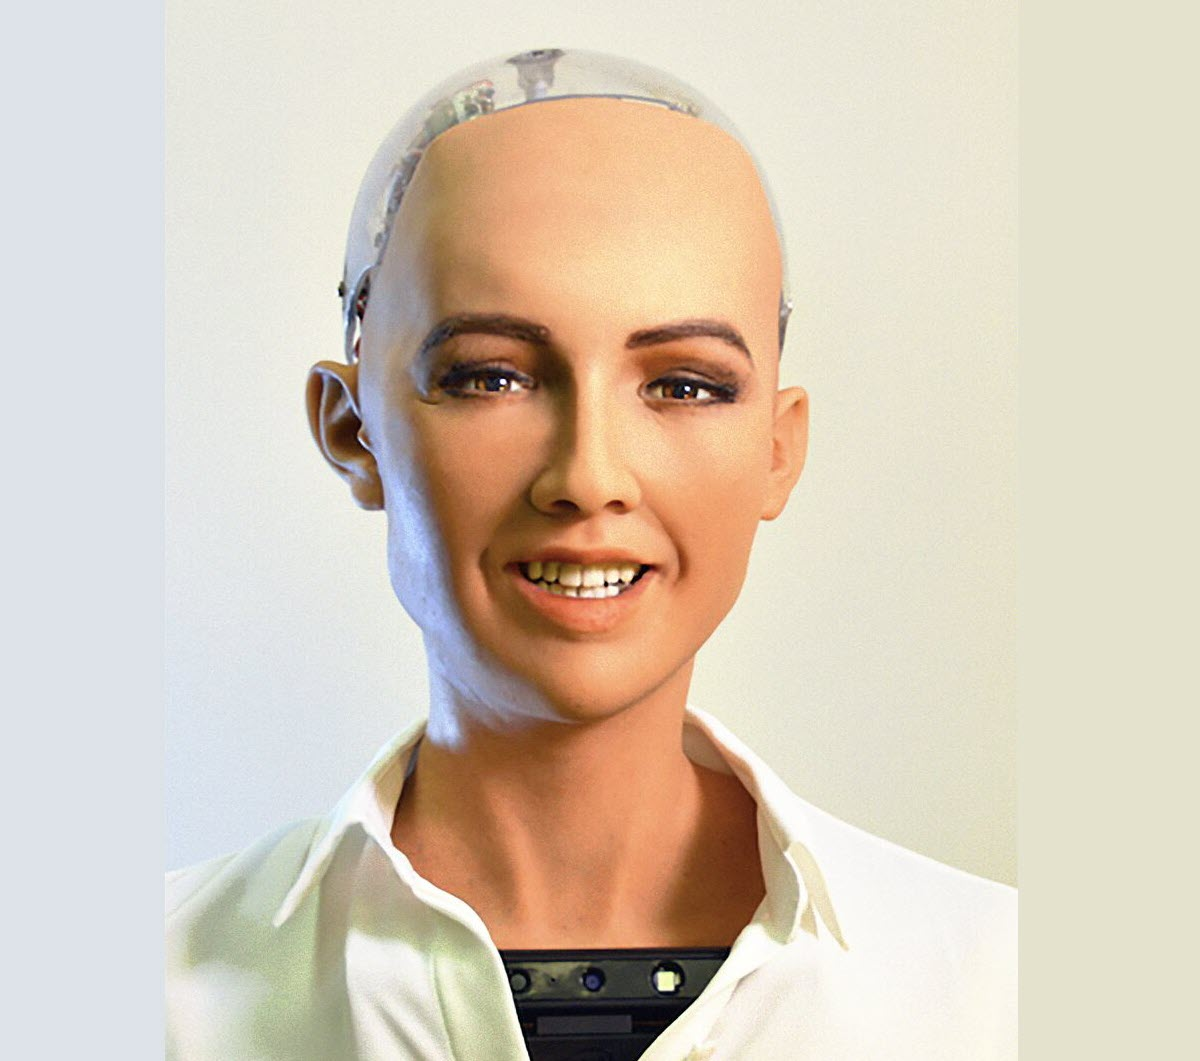 Humanoid AI - More artificial, less humanoid than you think